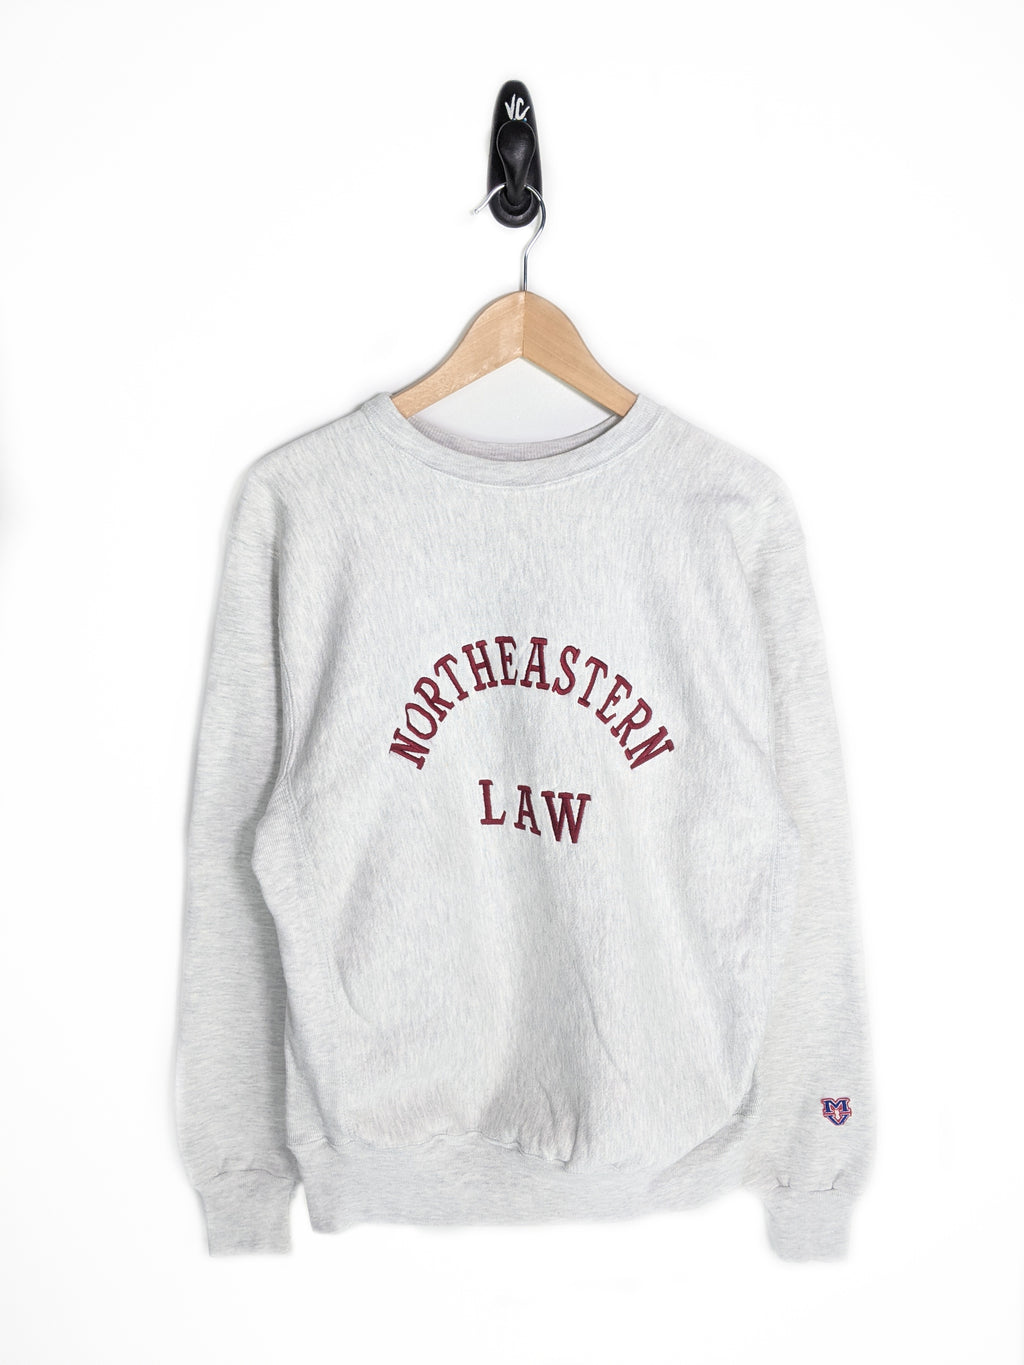 Northeastern Law Reverseweave Style (M)